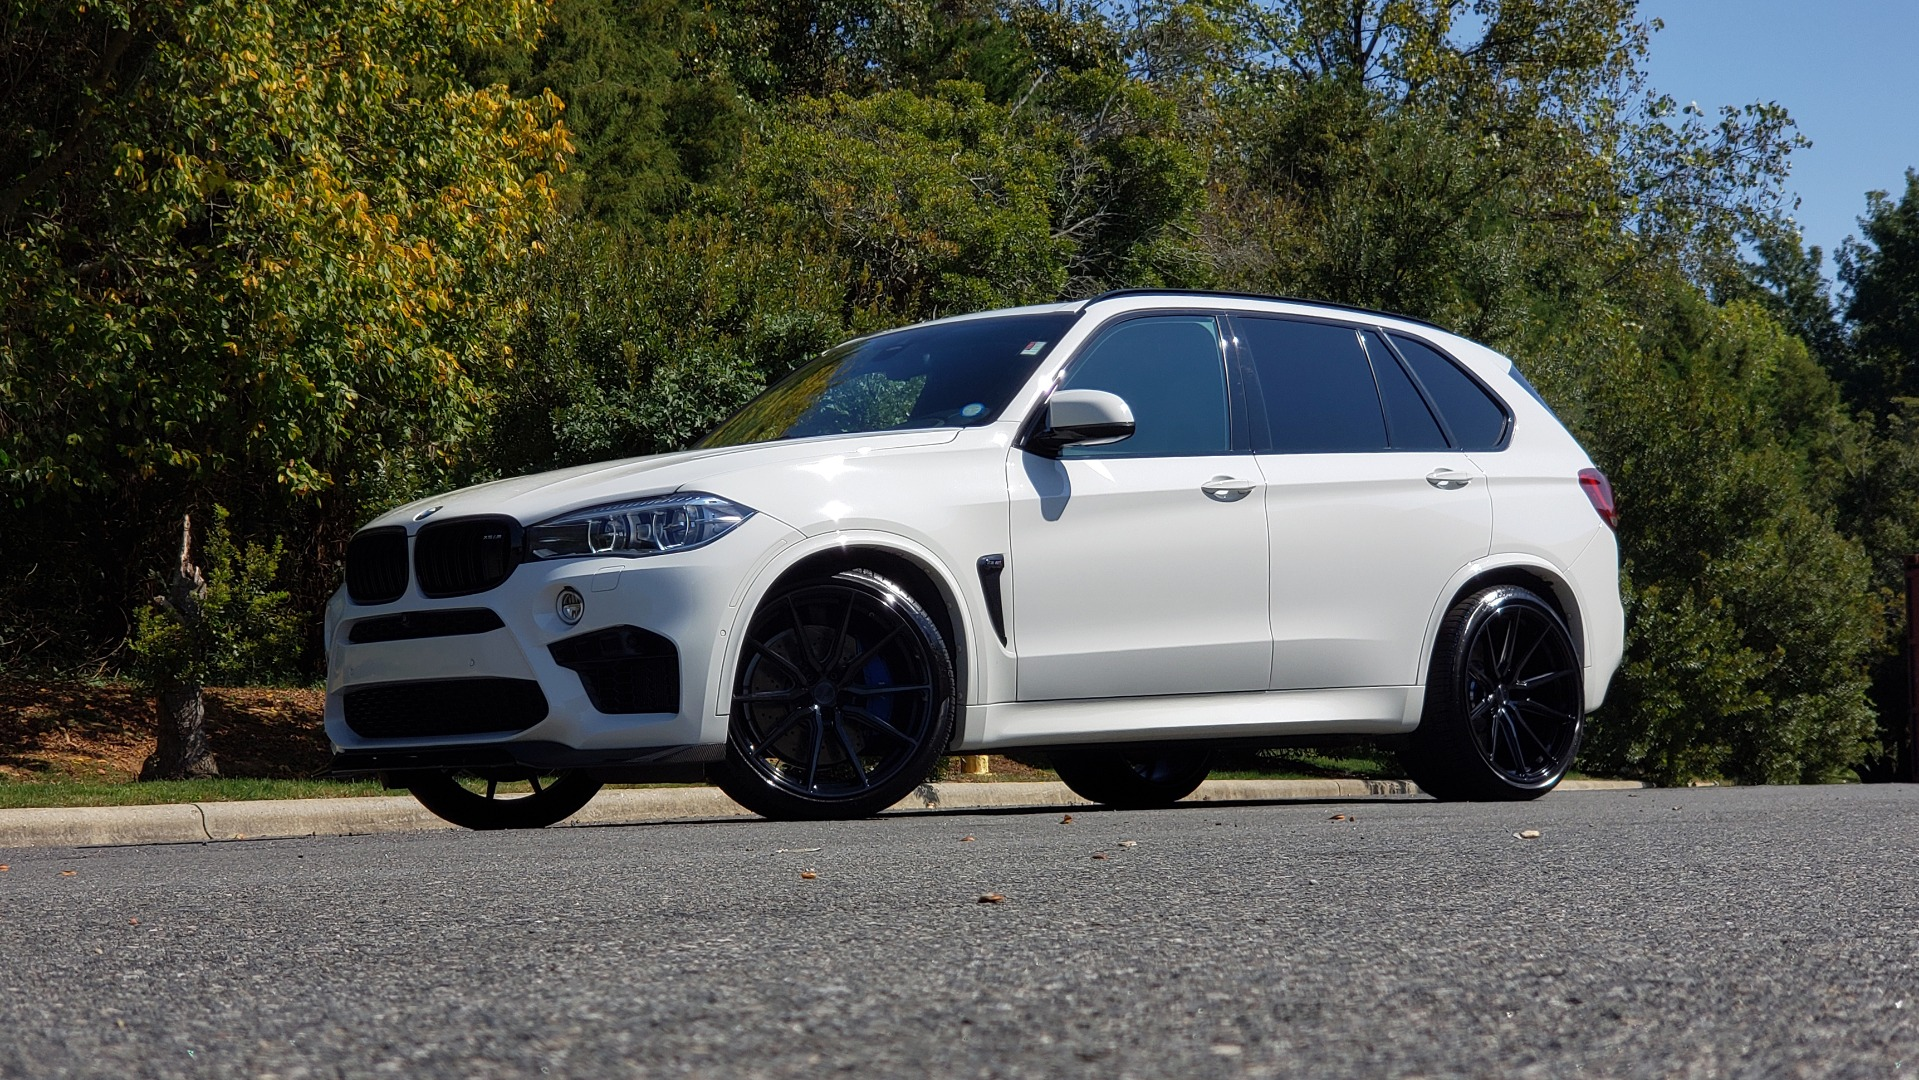 Used 2017 BMW X5 M SPORT / AWD / DRVR ASST / EXEC PKG / B&O SND / NIGHT VIS / PARK ASST for sale Sold at Formula Imports in Charlotte NC 28227 3